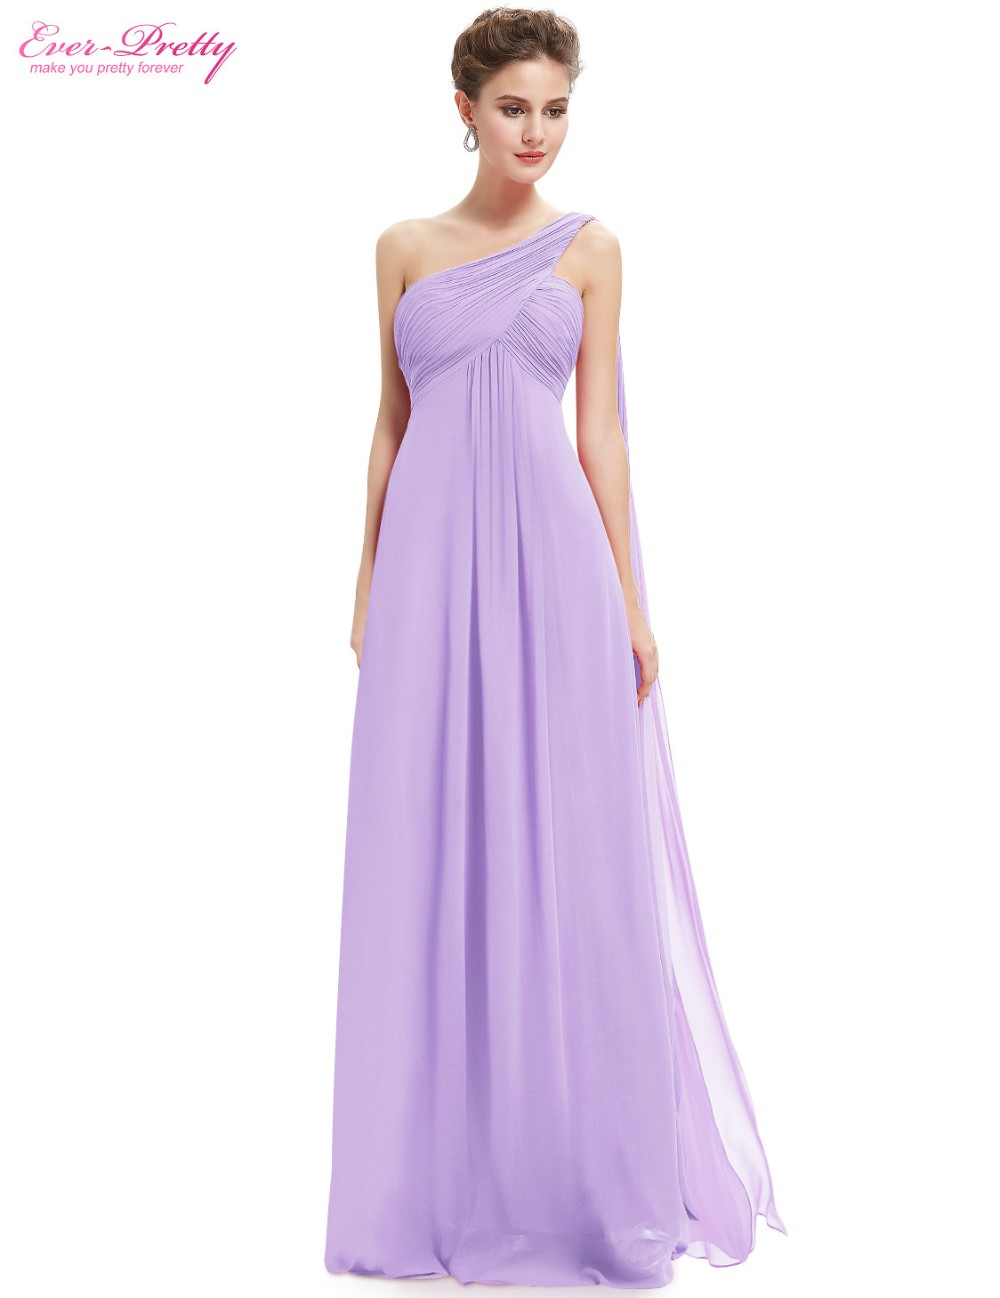 Bridesmaid Party Dresses One Shoulder Flowers Padded Ruffles Short ...